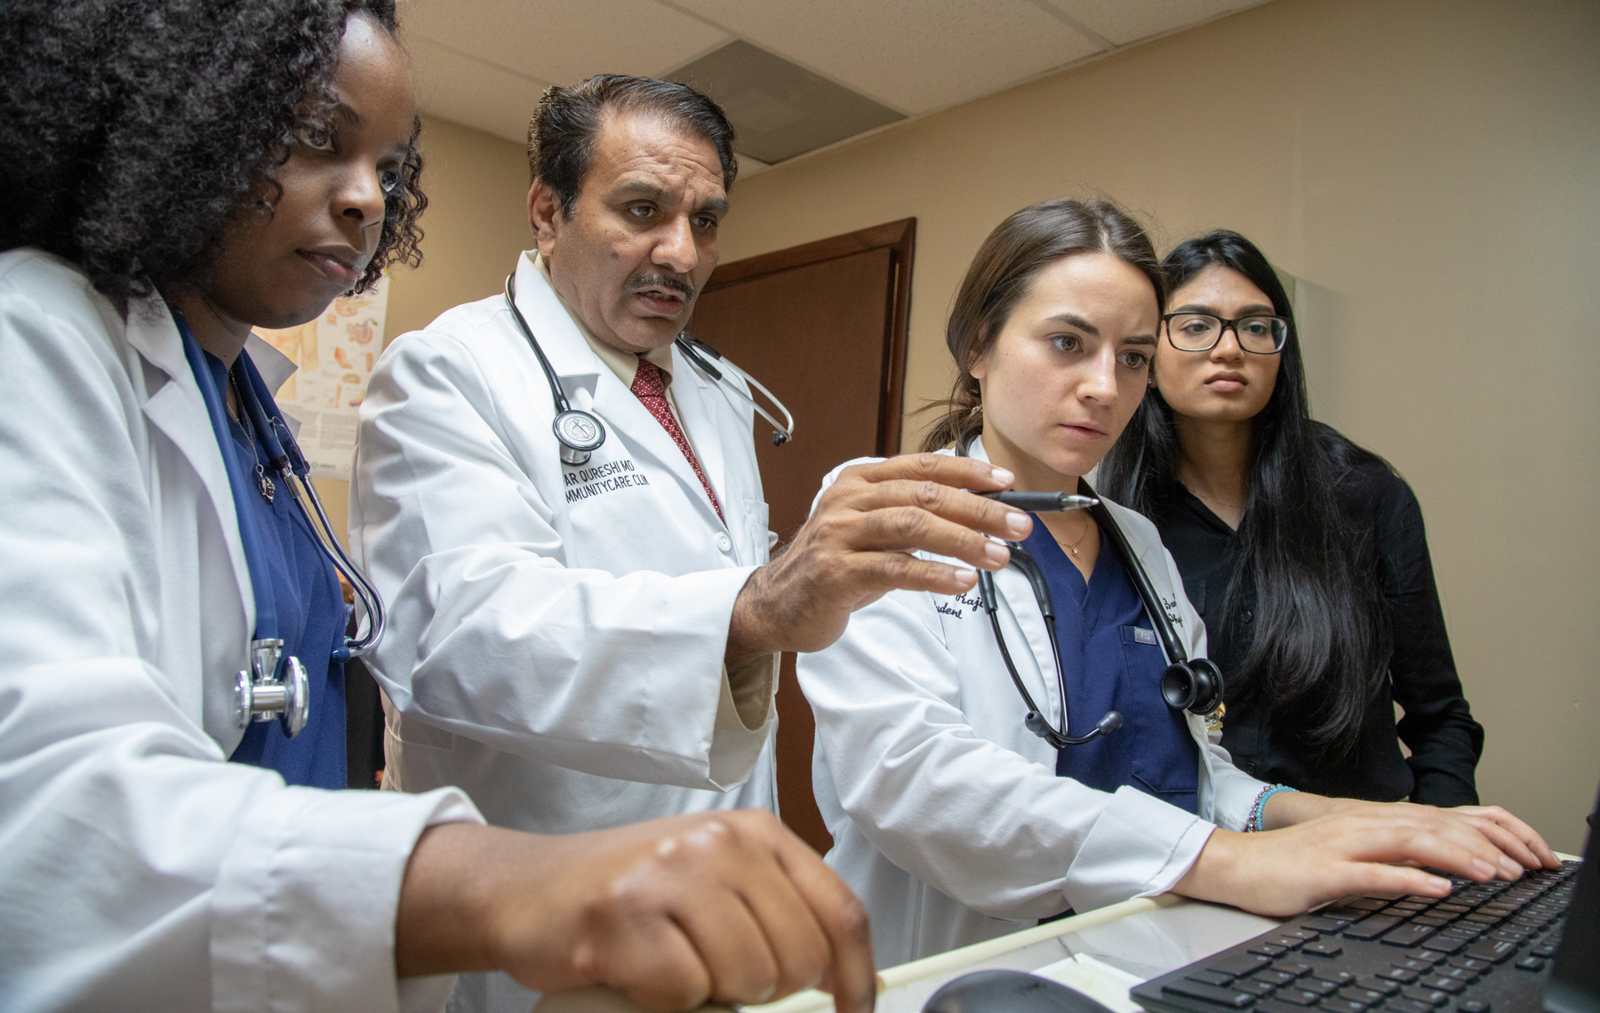 UHI Community Care Clinic's Dr. Zafar Qureshi teaches students in Miami. Connecting experienced specialists with health care center providers is at the heart of the MAVEN Project's approach.(Photo courtesy of The MAVEN Project)